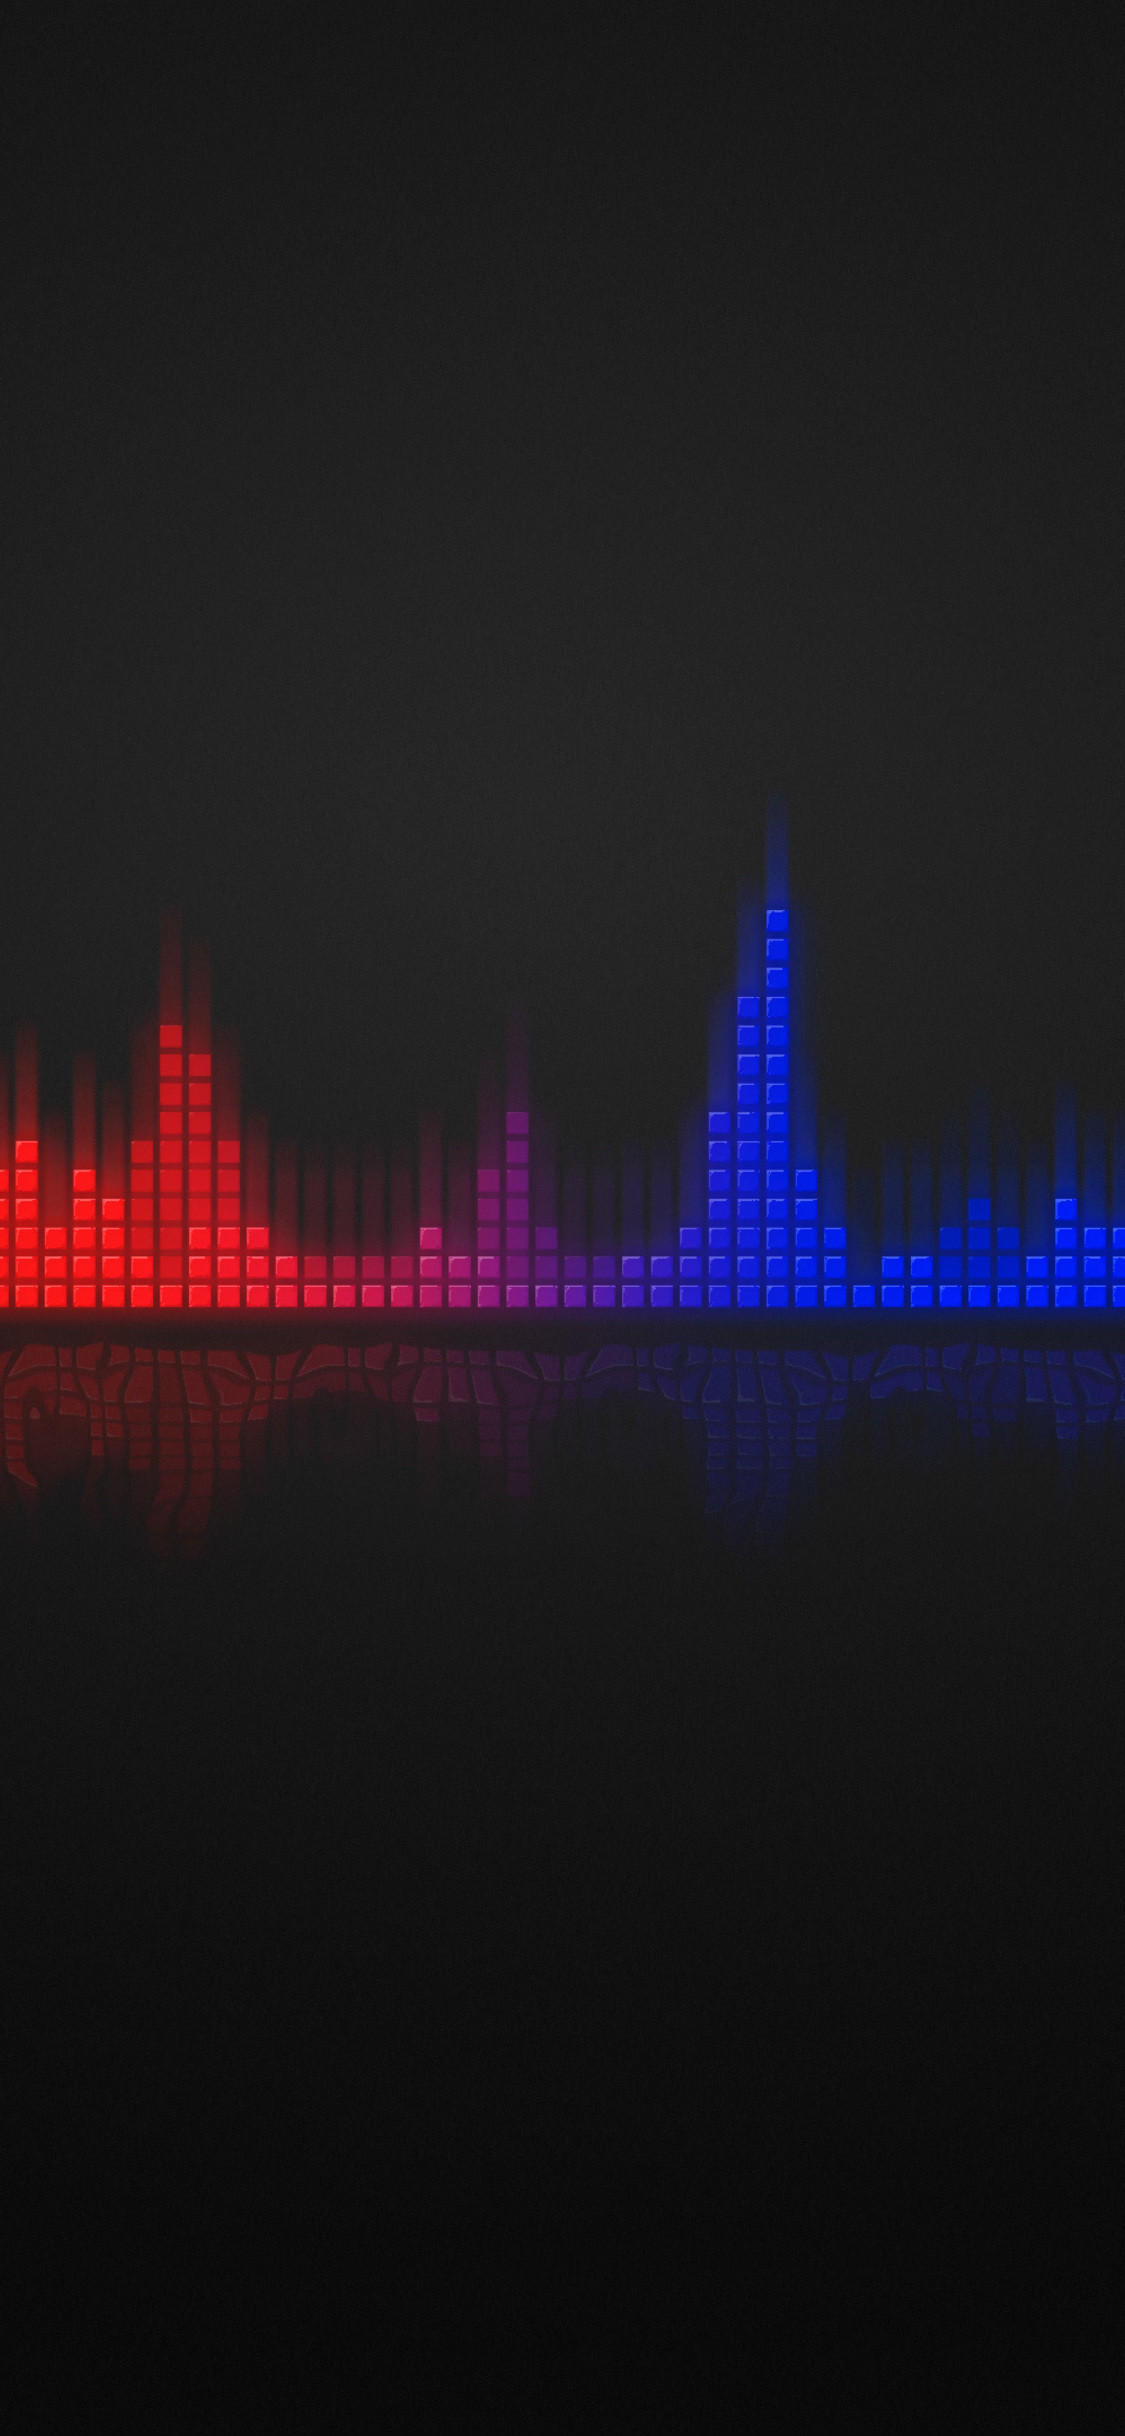 Download Music Live Wallpaper For Android Equalizer Wallpaper